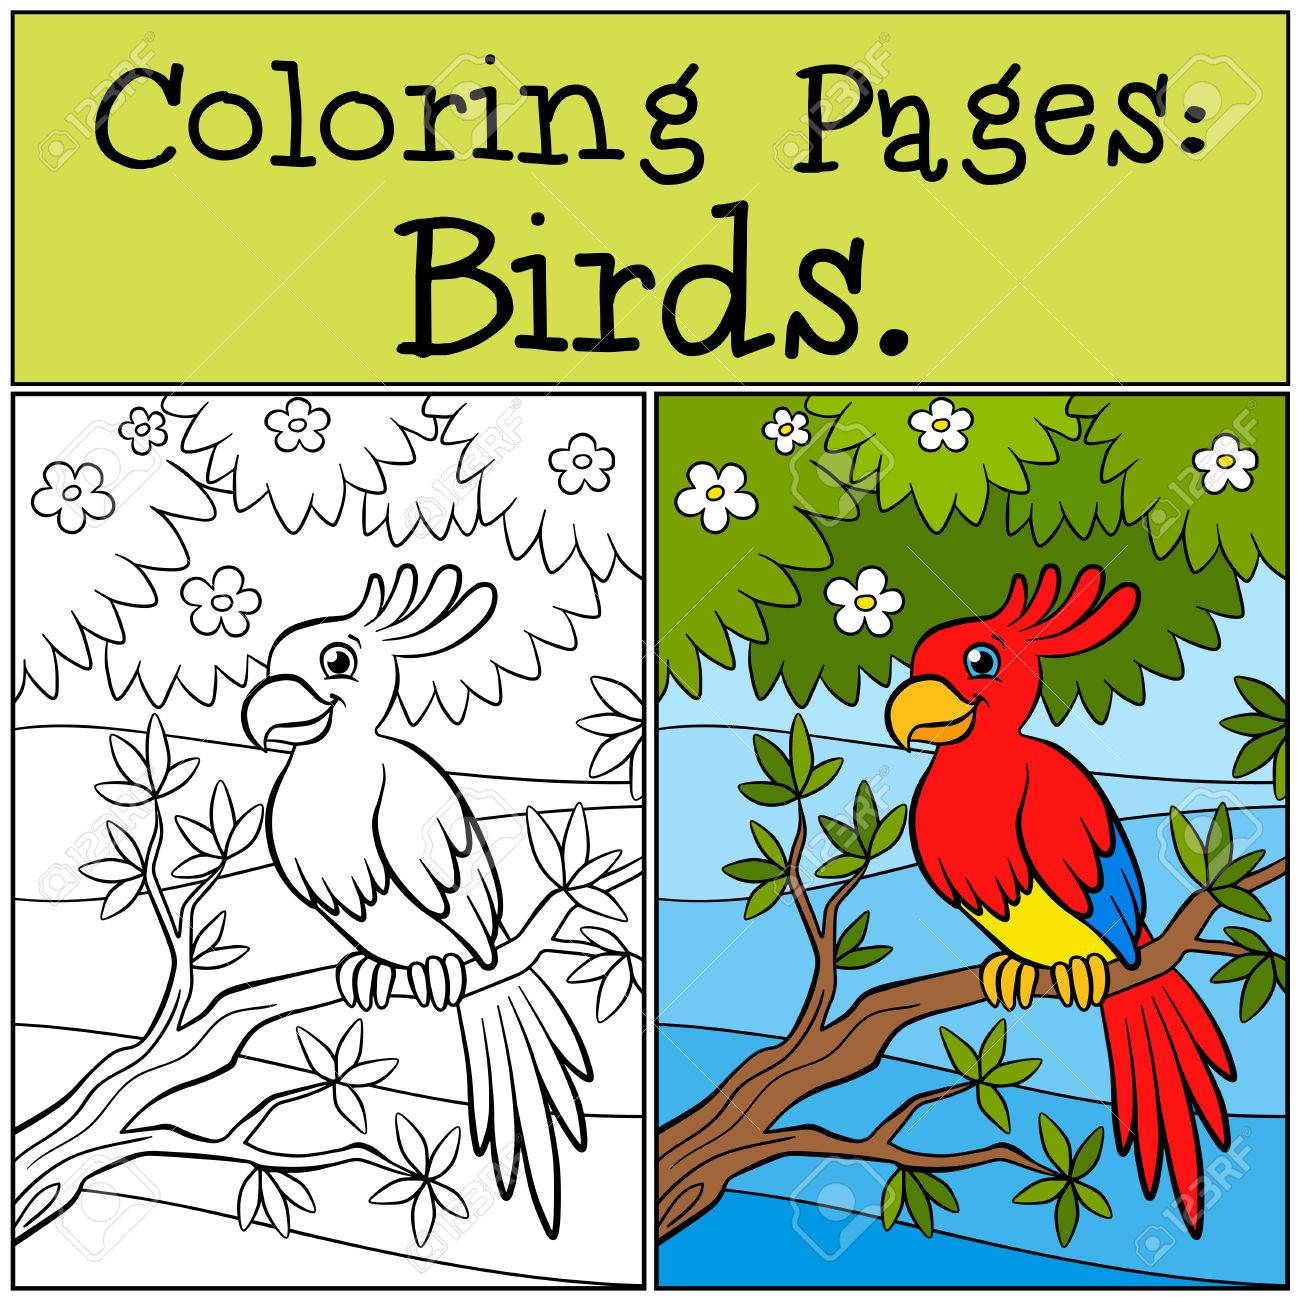 Coloring Pages: Birds. Little Cute Parrot Sits On The Tree Branch ...